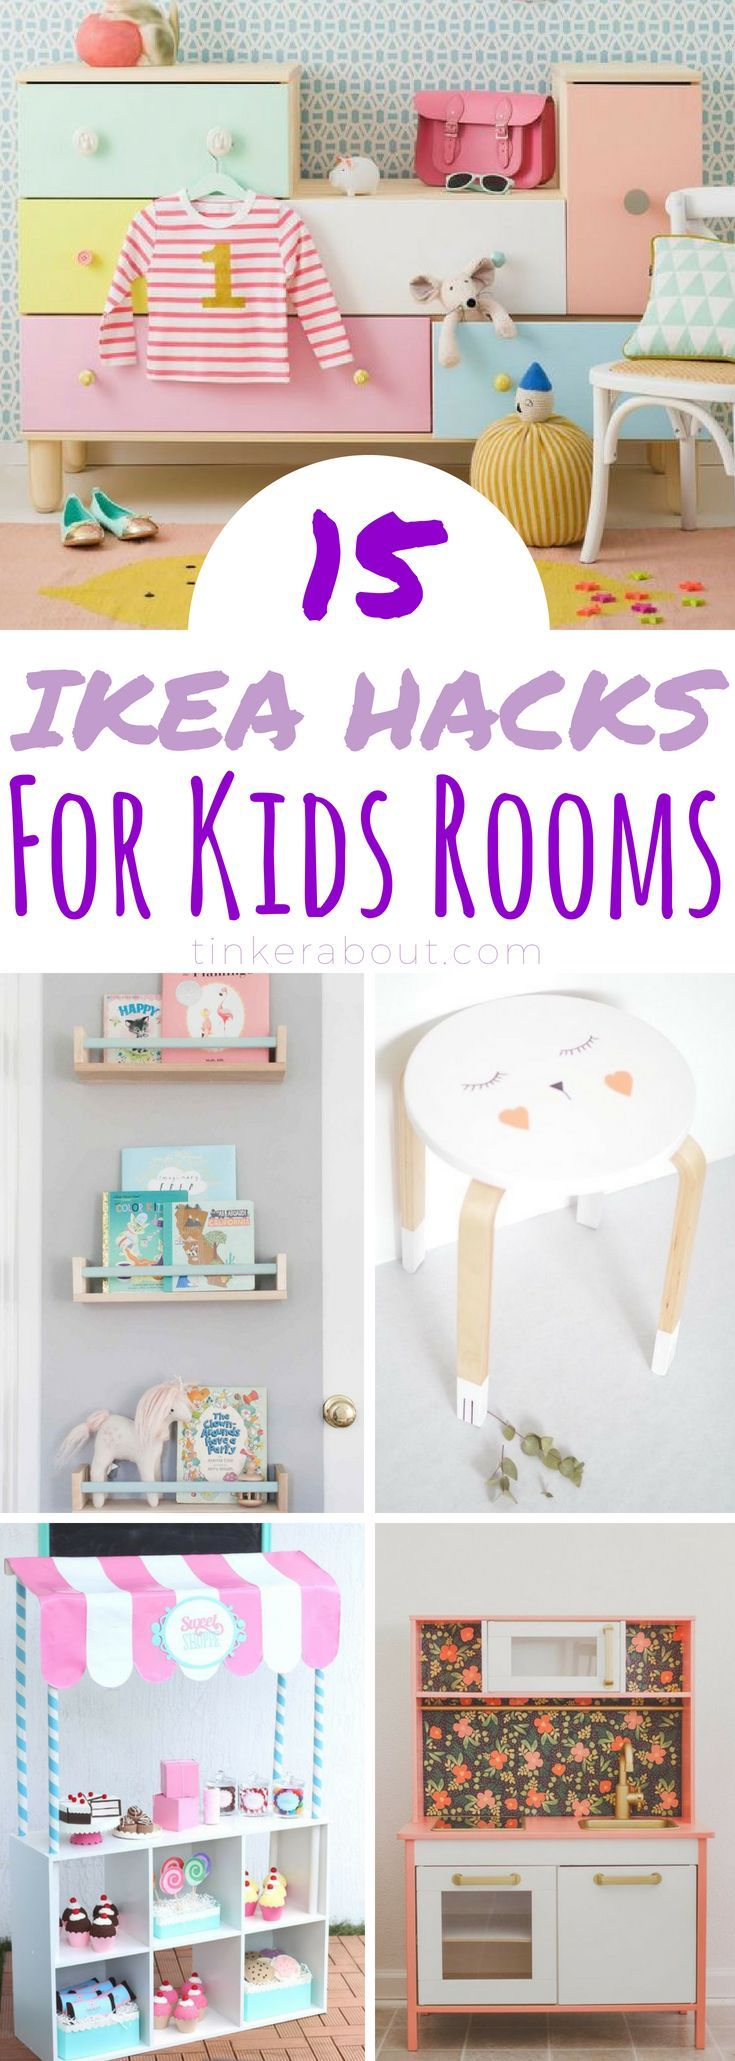 These adorable Ikea Hacks for Kids will update your child's bedroom in an instan...